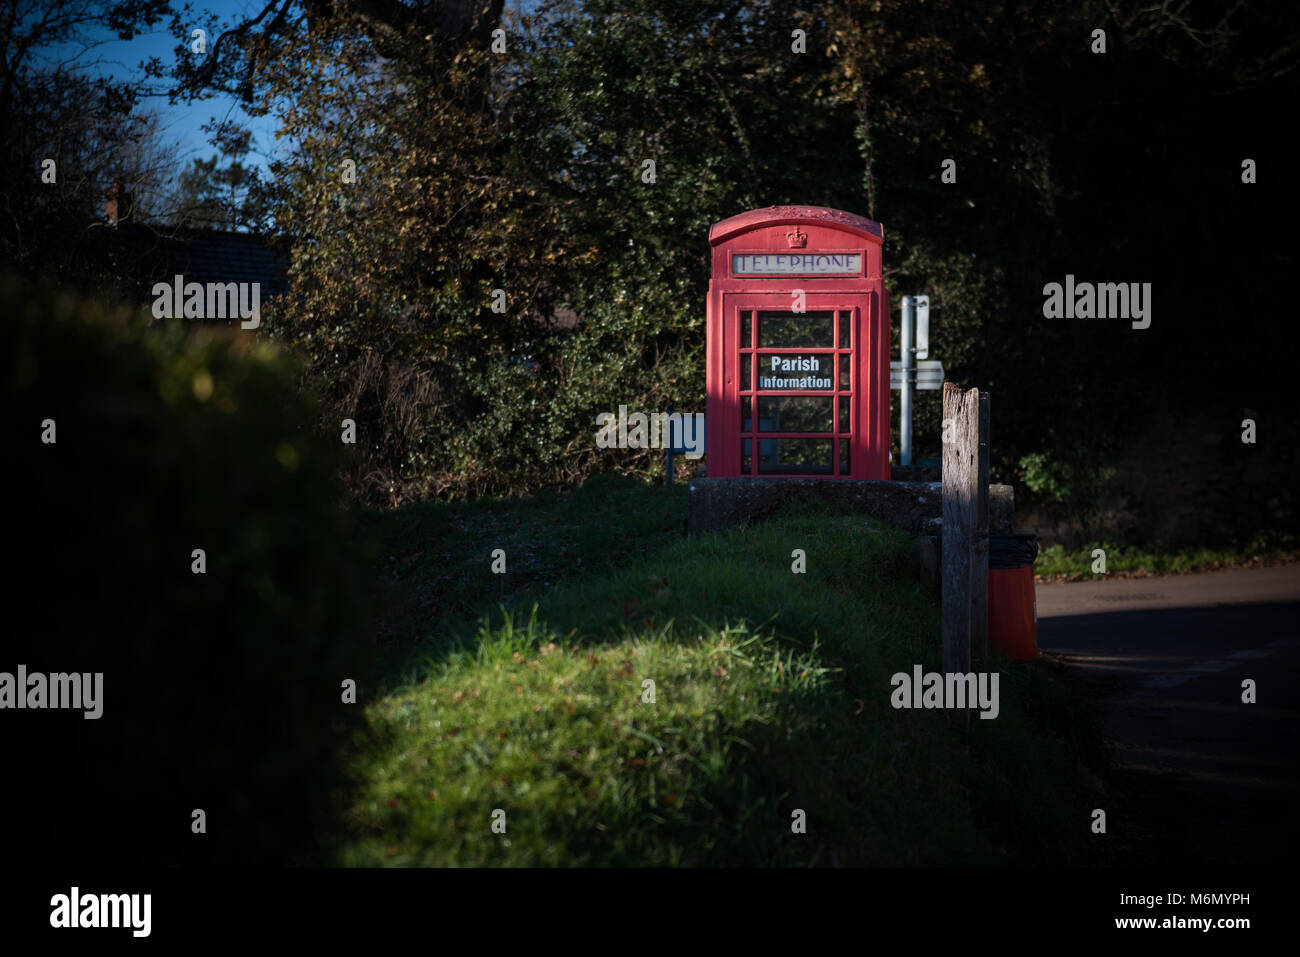 Red telephone box in English countryside - Stock Image